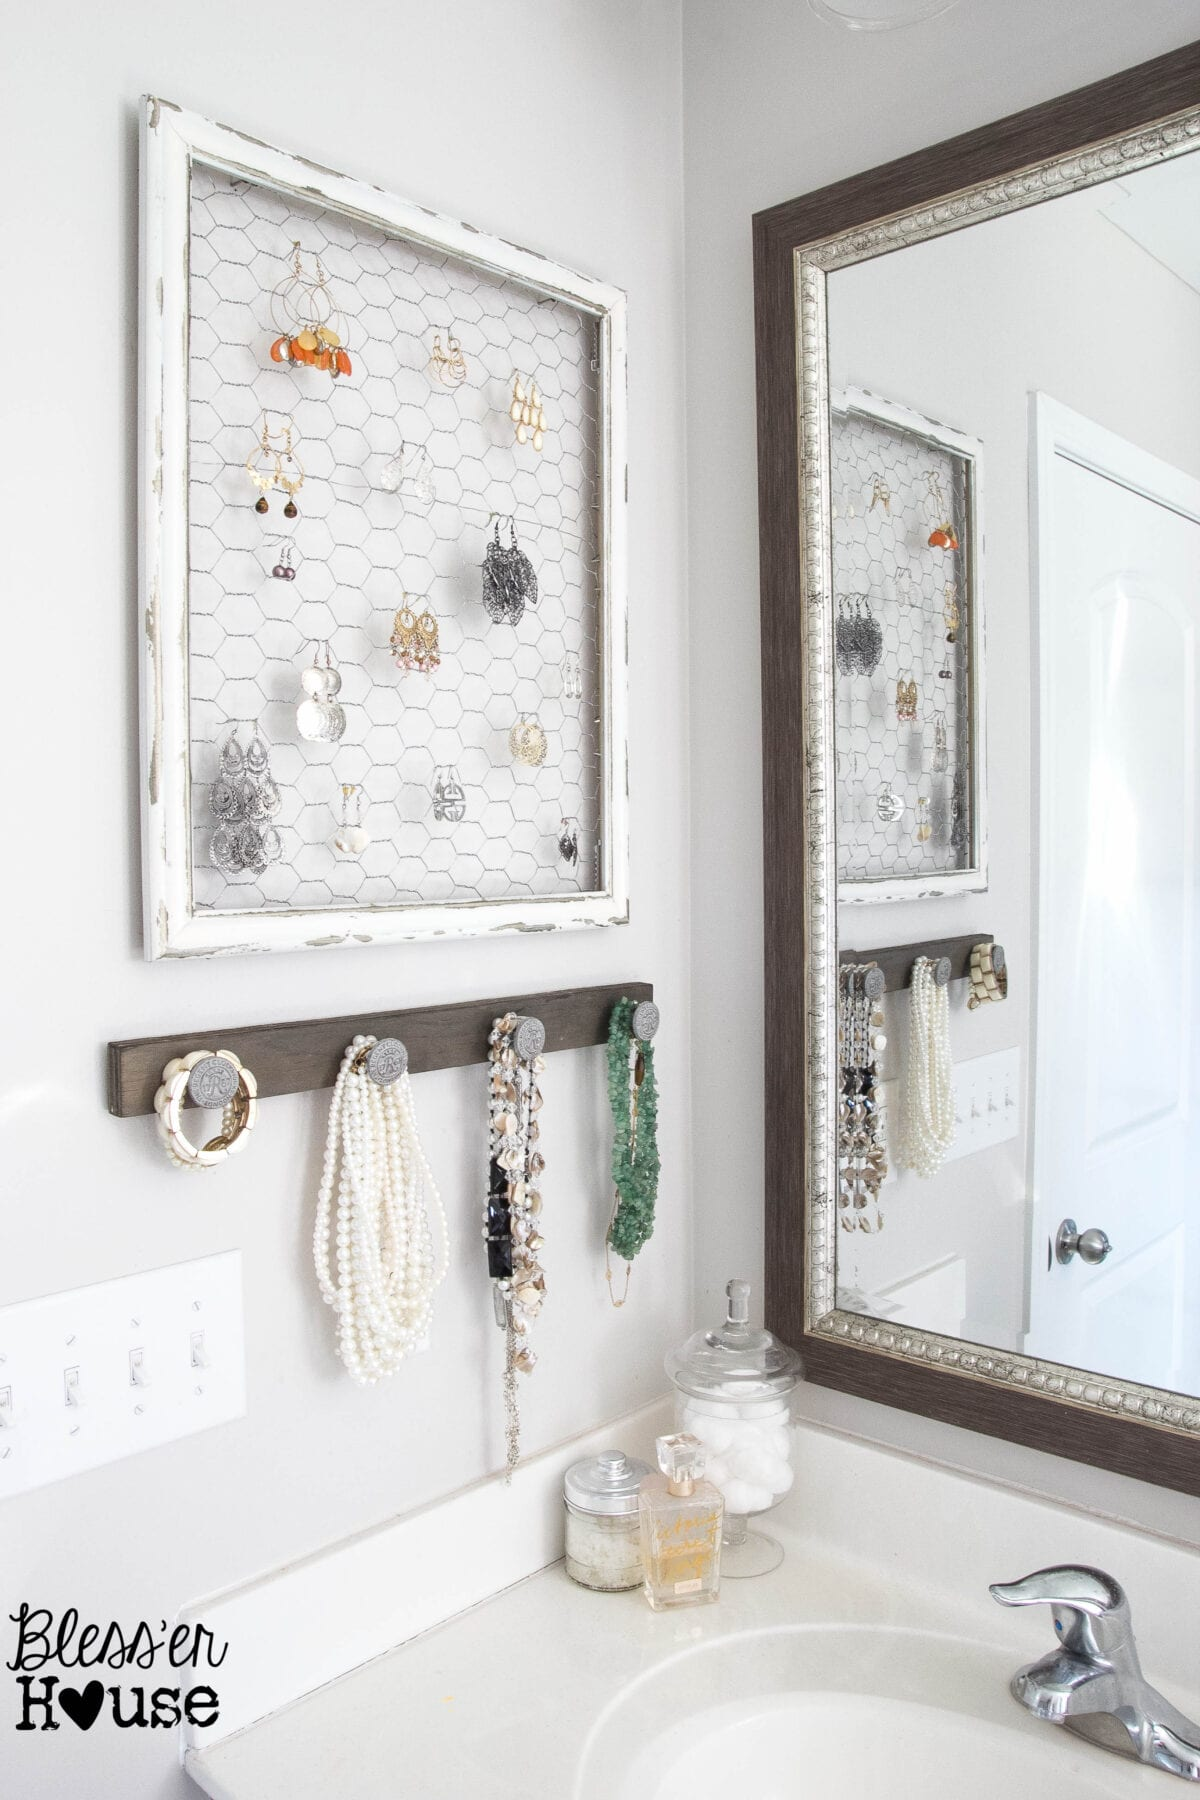 Diy rustic industrial jewelry organizer bless 39 er house for Bathroom decor and storage